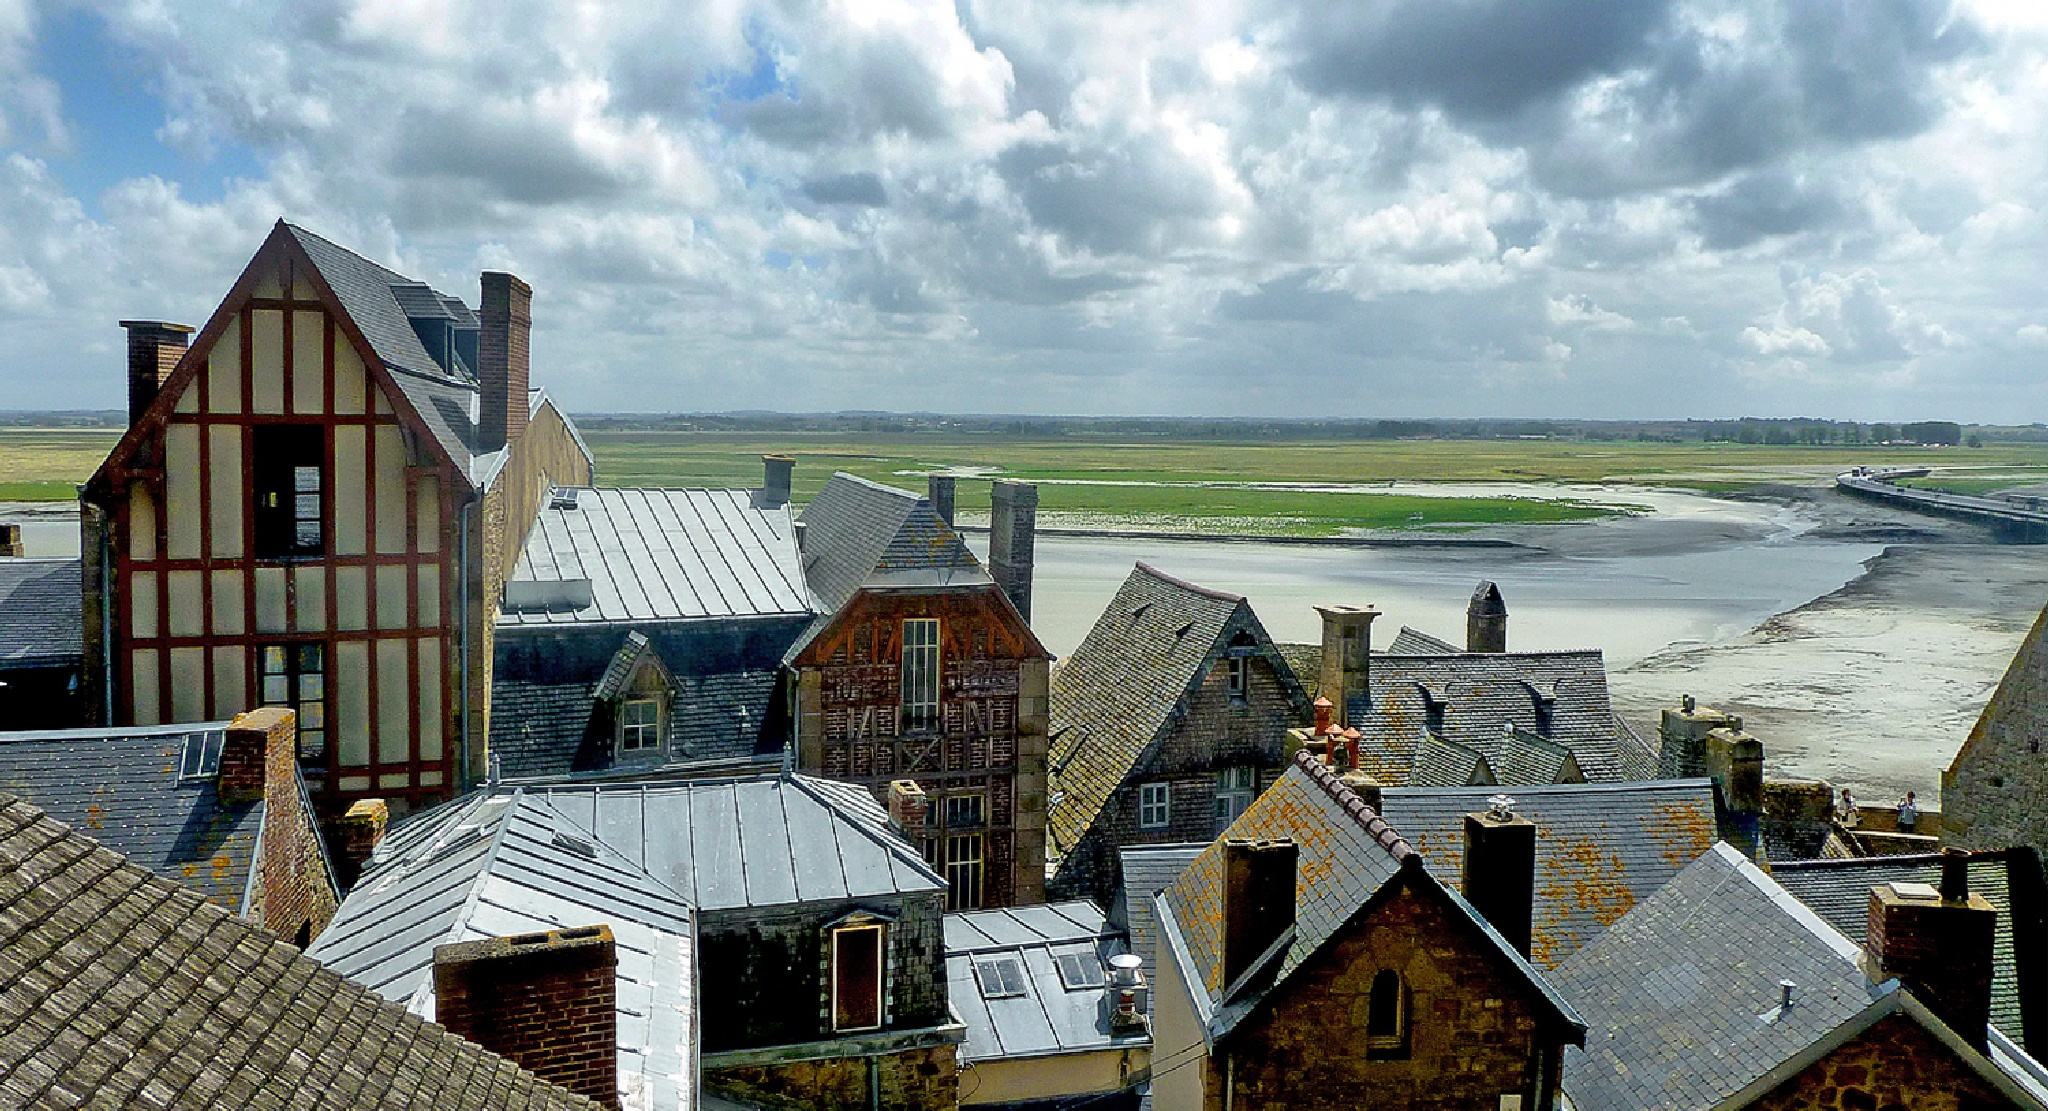 Roof Tops on Mont Saint Michael. Northern France. by Malcolm White